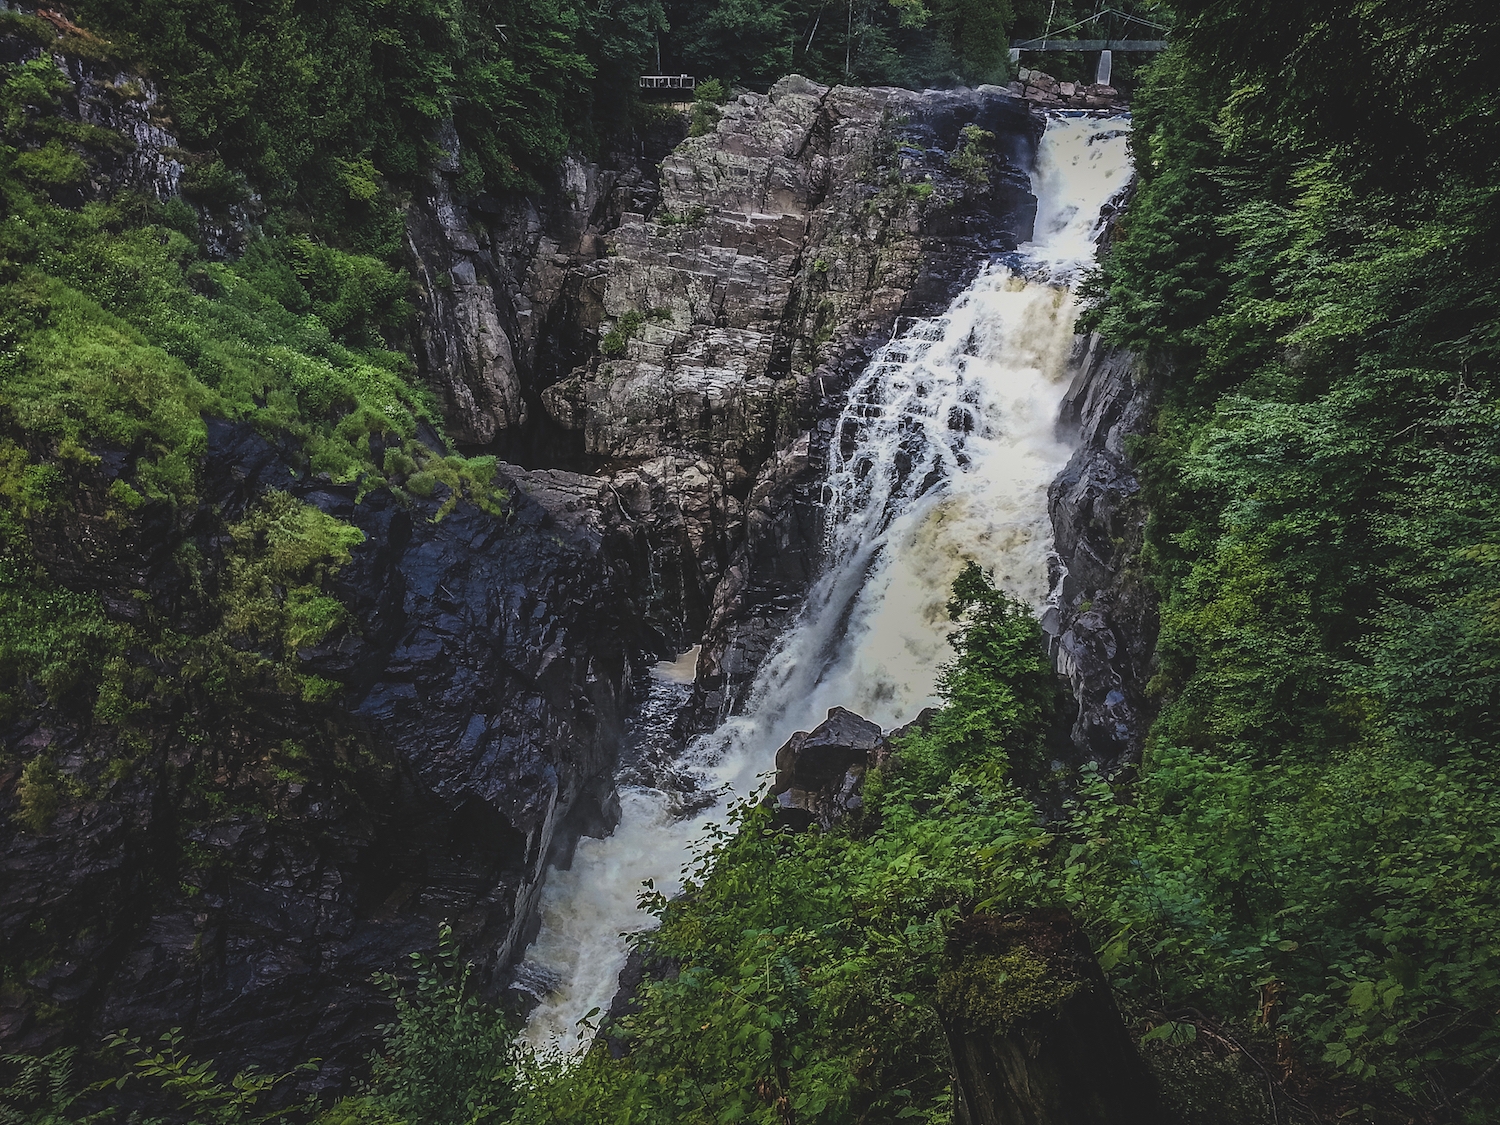 """Breathtaking gorge that drops 74 meters and is carved by the Sainte-Anne-du-Nord River, Beaupre, Quebec, Canada"" By Focqus via Shutterstock"